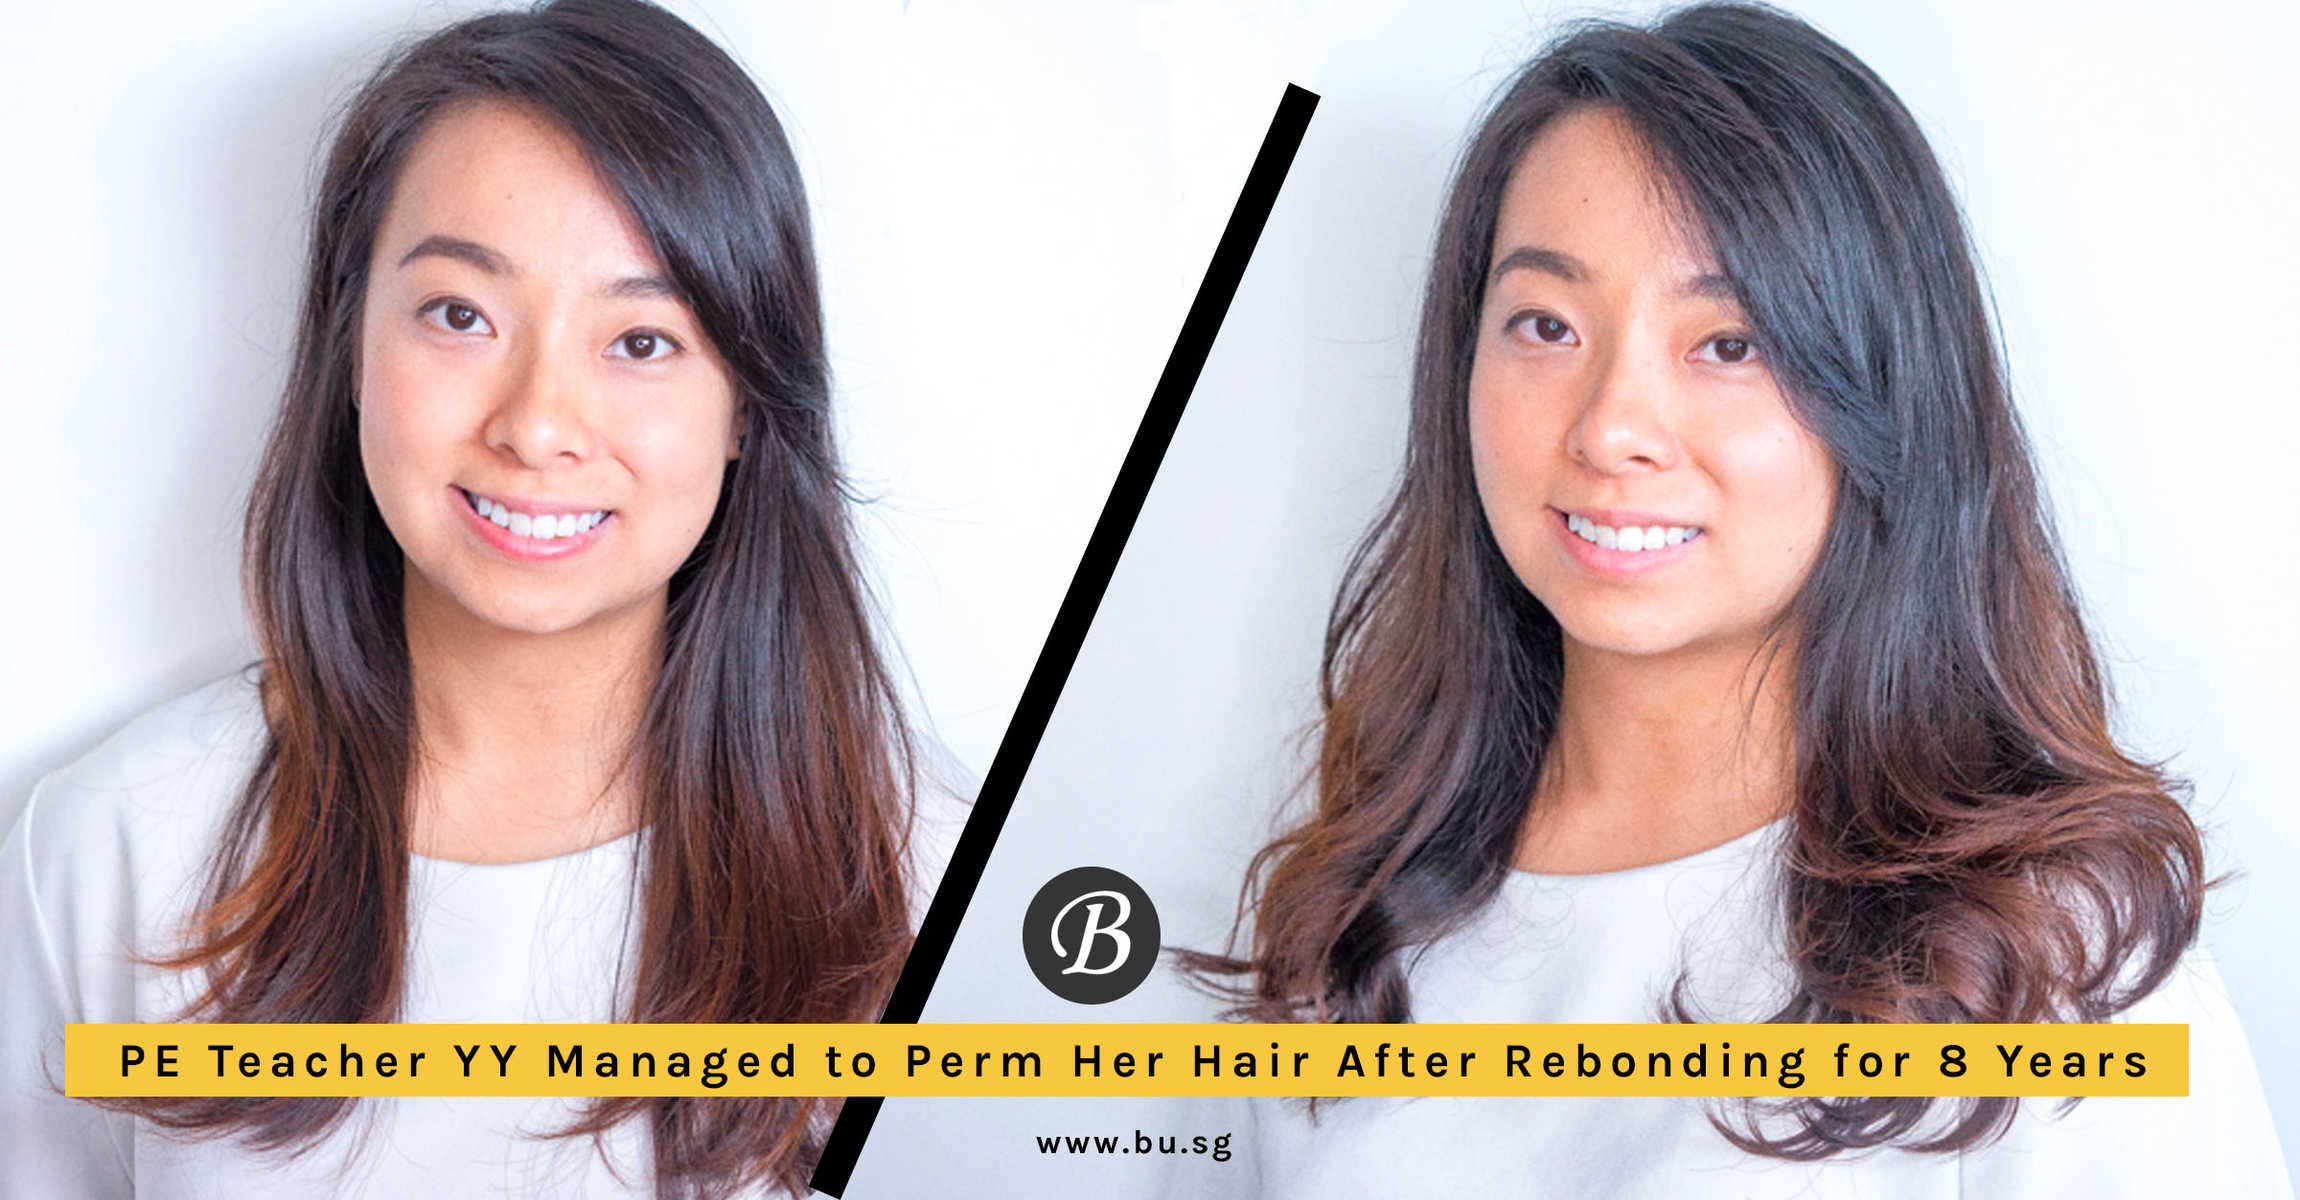 PE Teacher YY Finally Managed to Perm Her Hair with Paimore GRATS After Rebonding for 8 Years